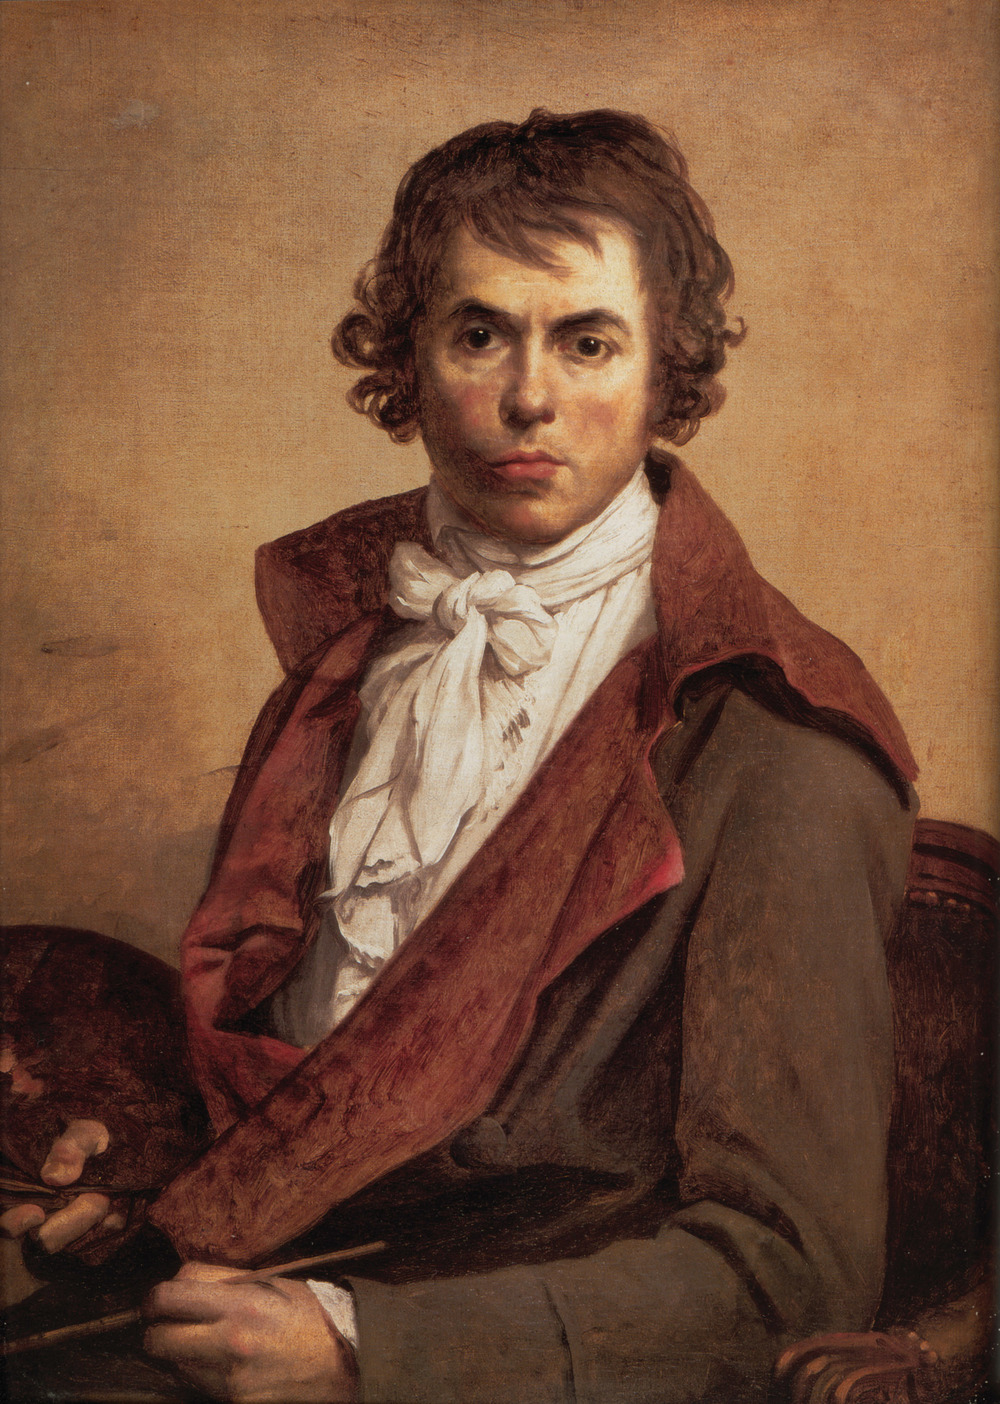 Self-portrait of French painter Jacques-Louis David